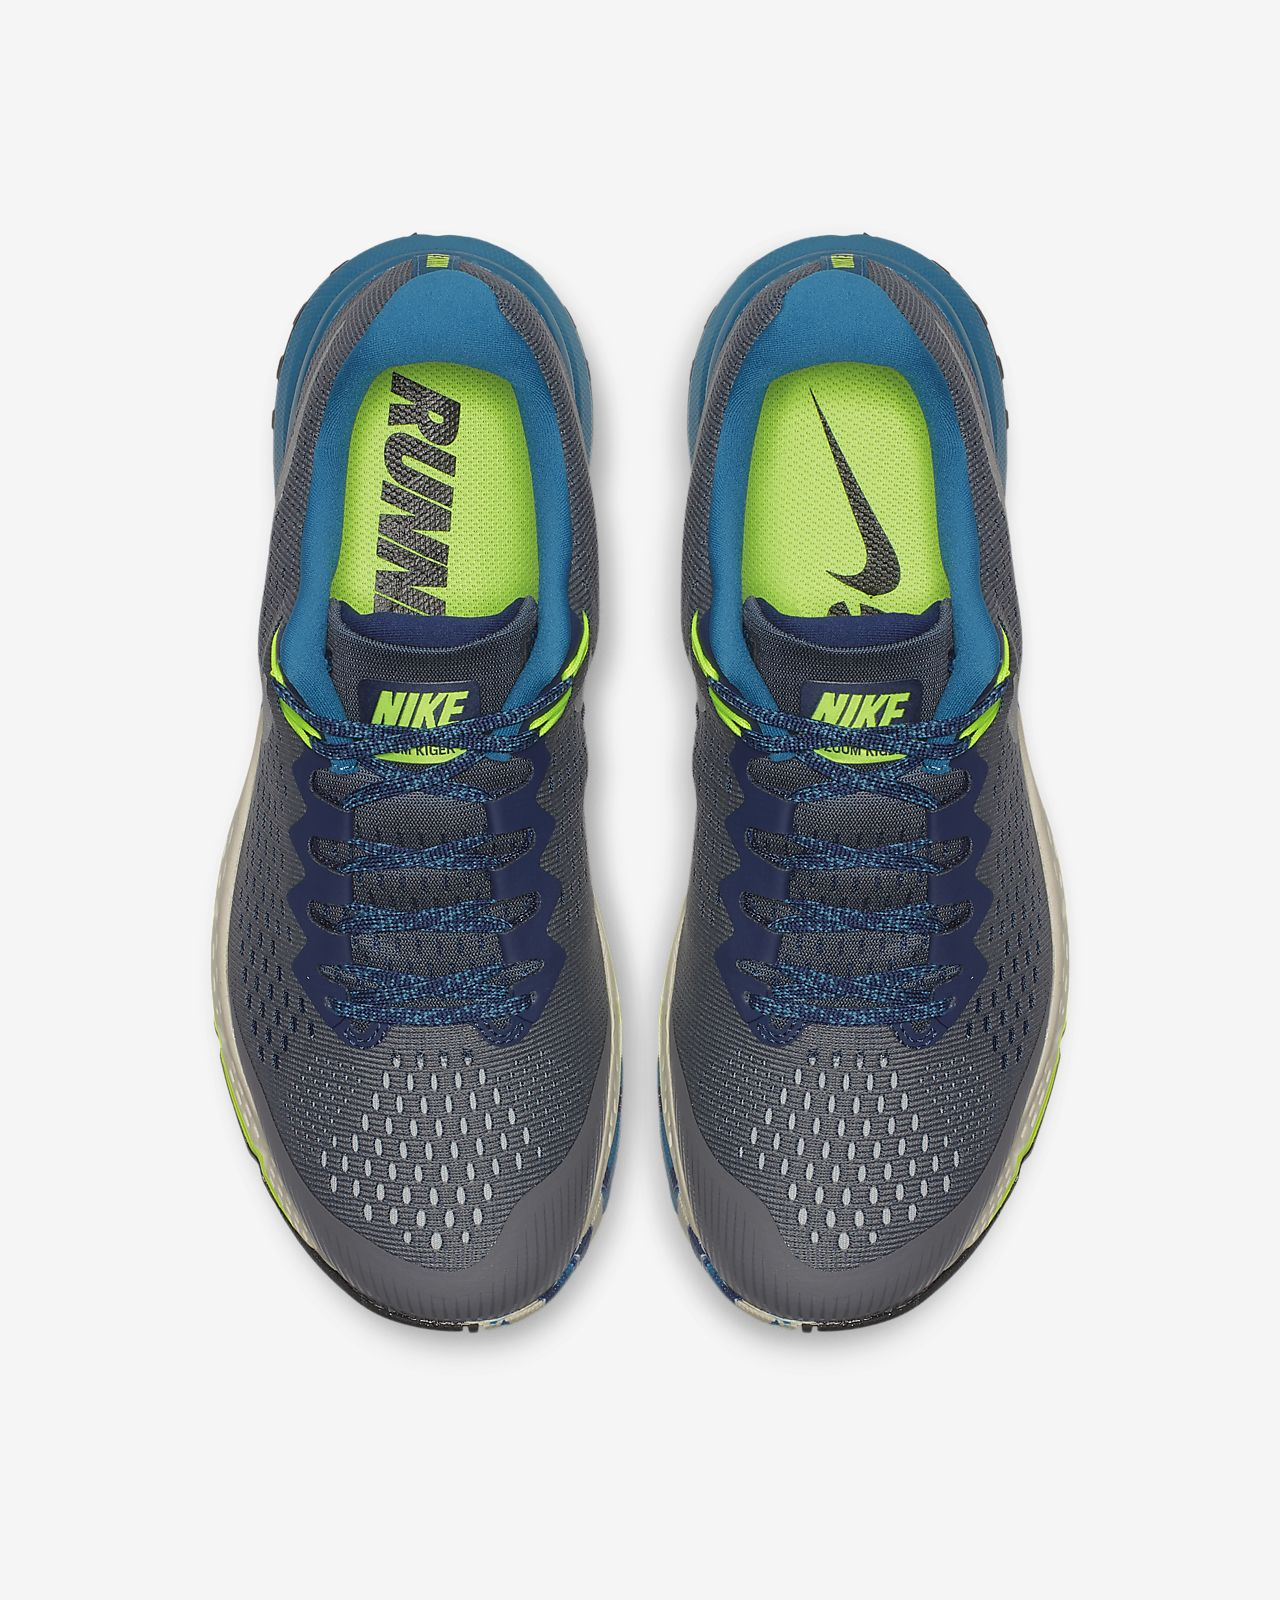 reputable site ac2f0 5a24e ... Chaussure de running Nike Air Zoom Terra Kiger 4 pour Homme